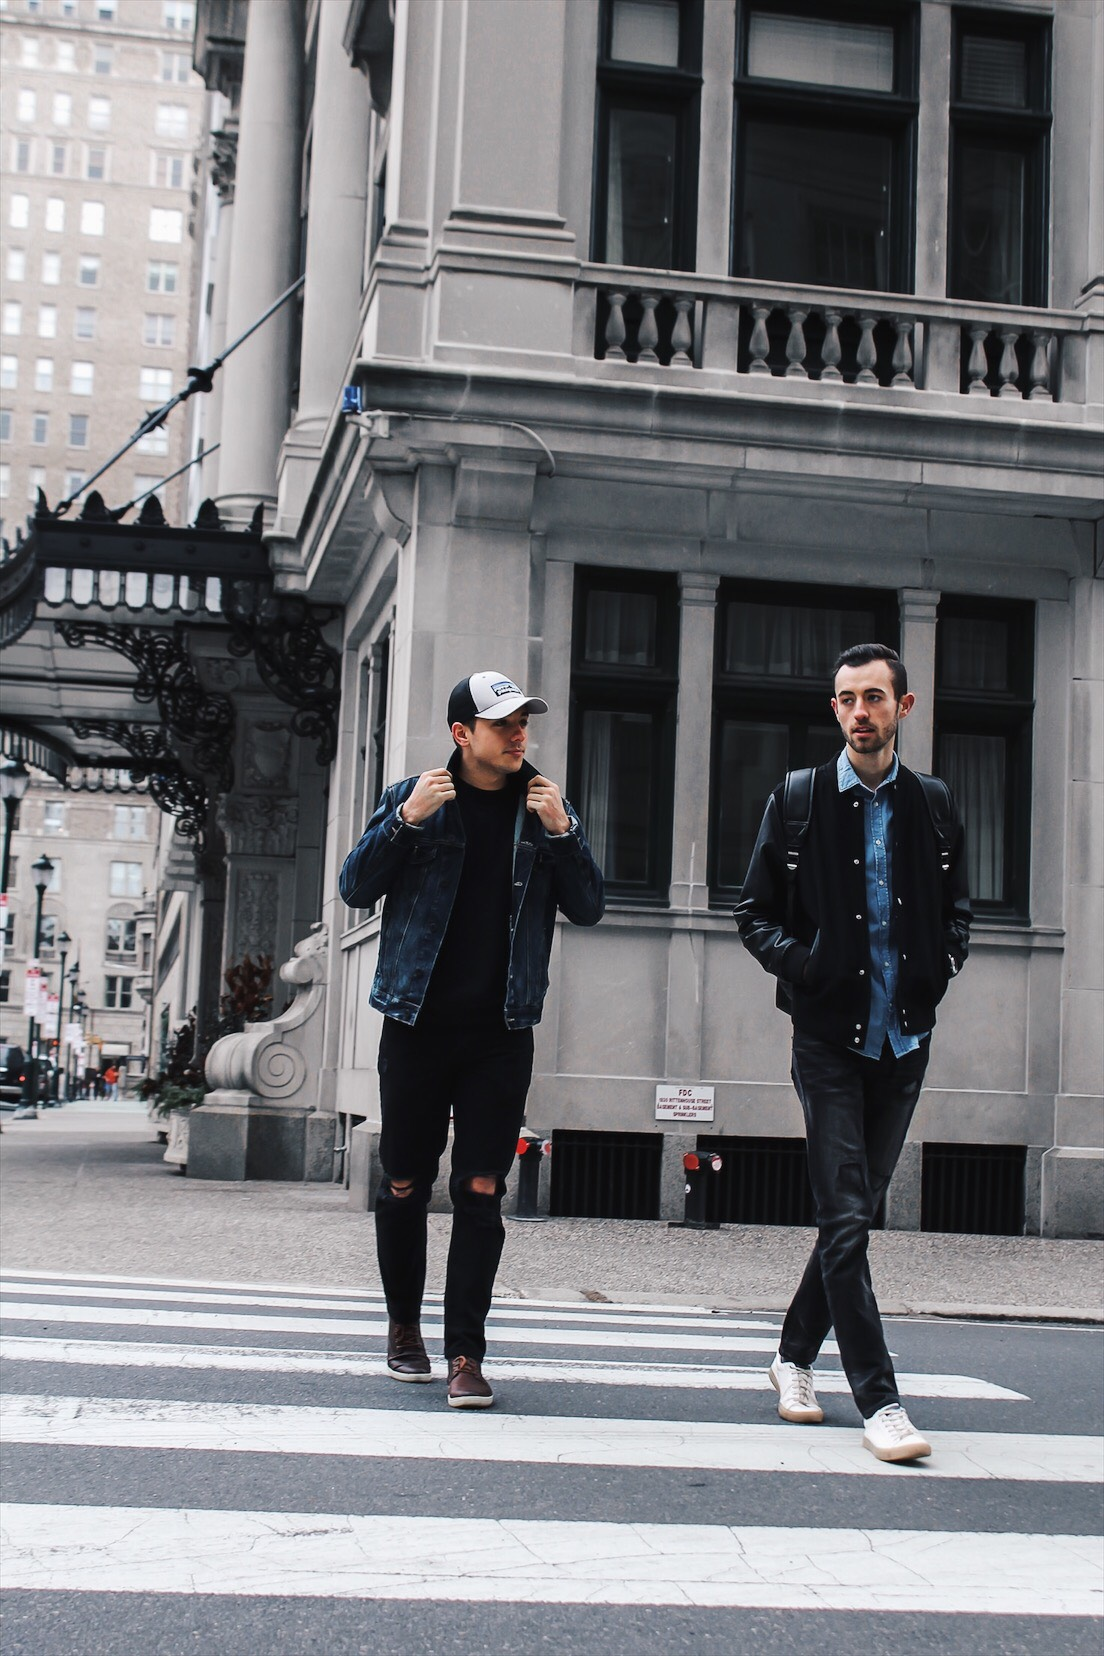 alex and mike crossing street in center city